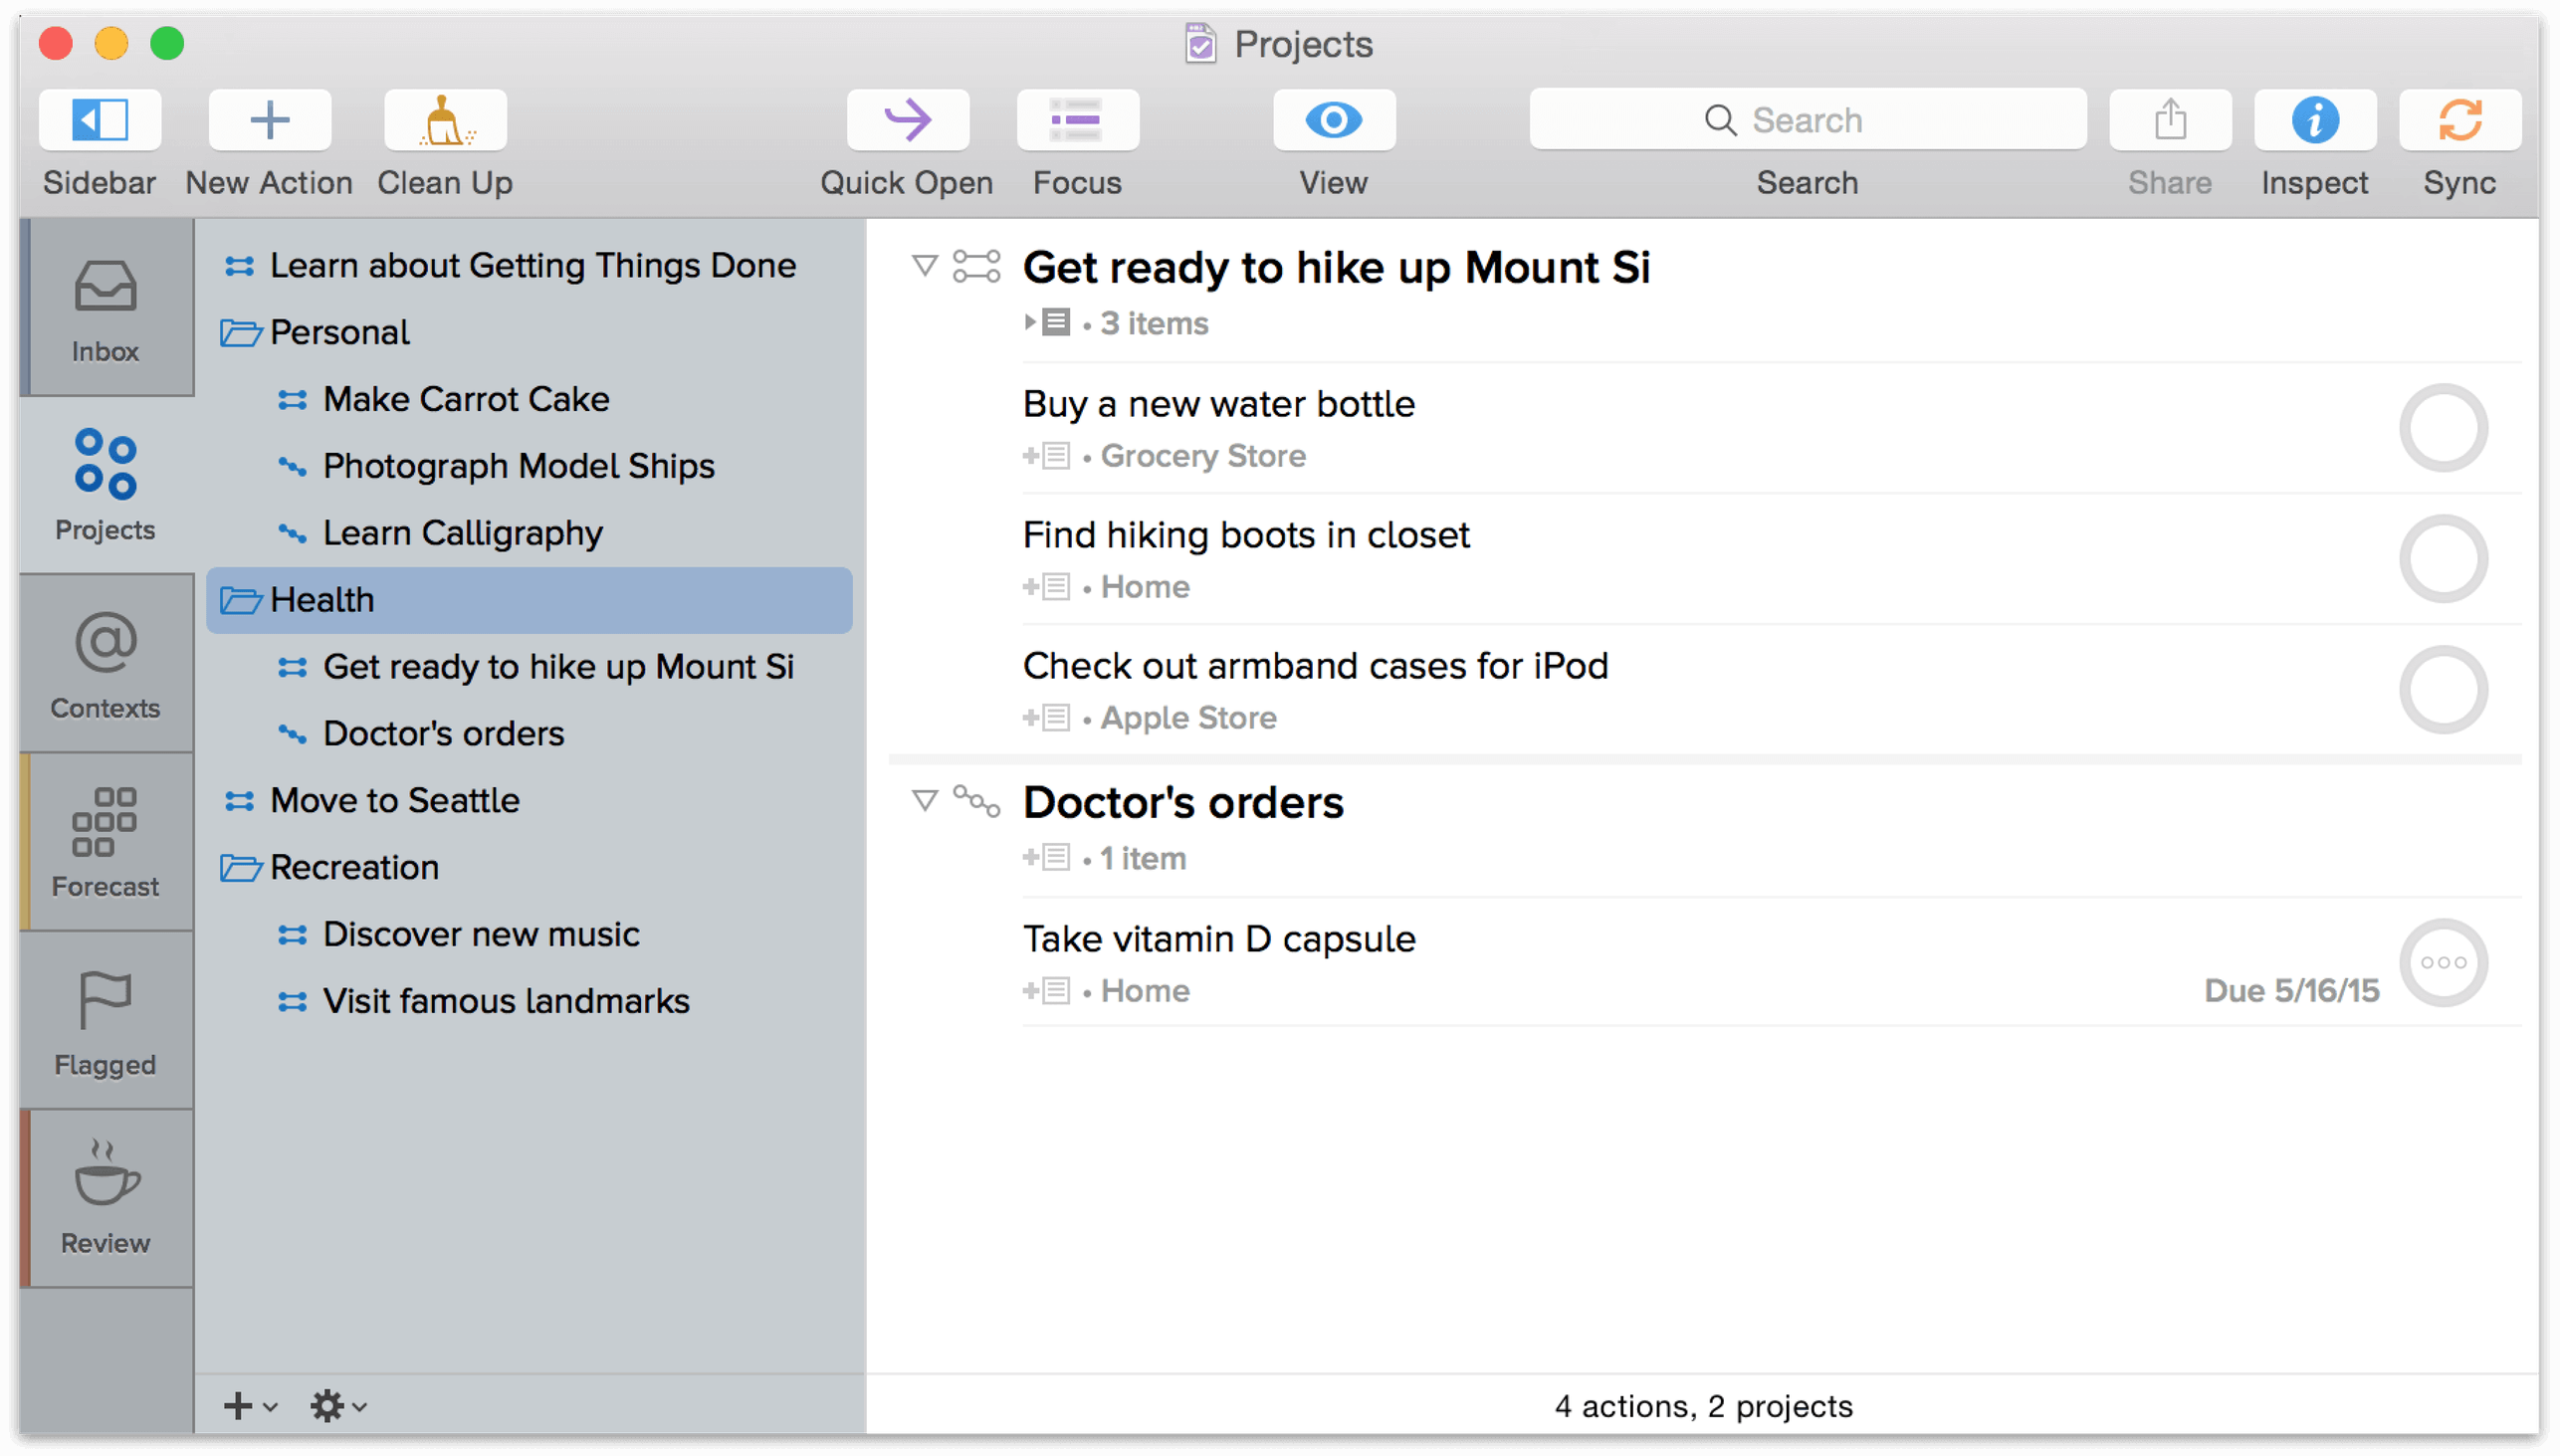 OmniFocus 2 for Mac User Manual - Projects